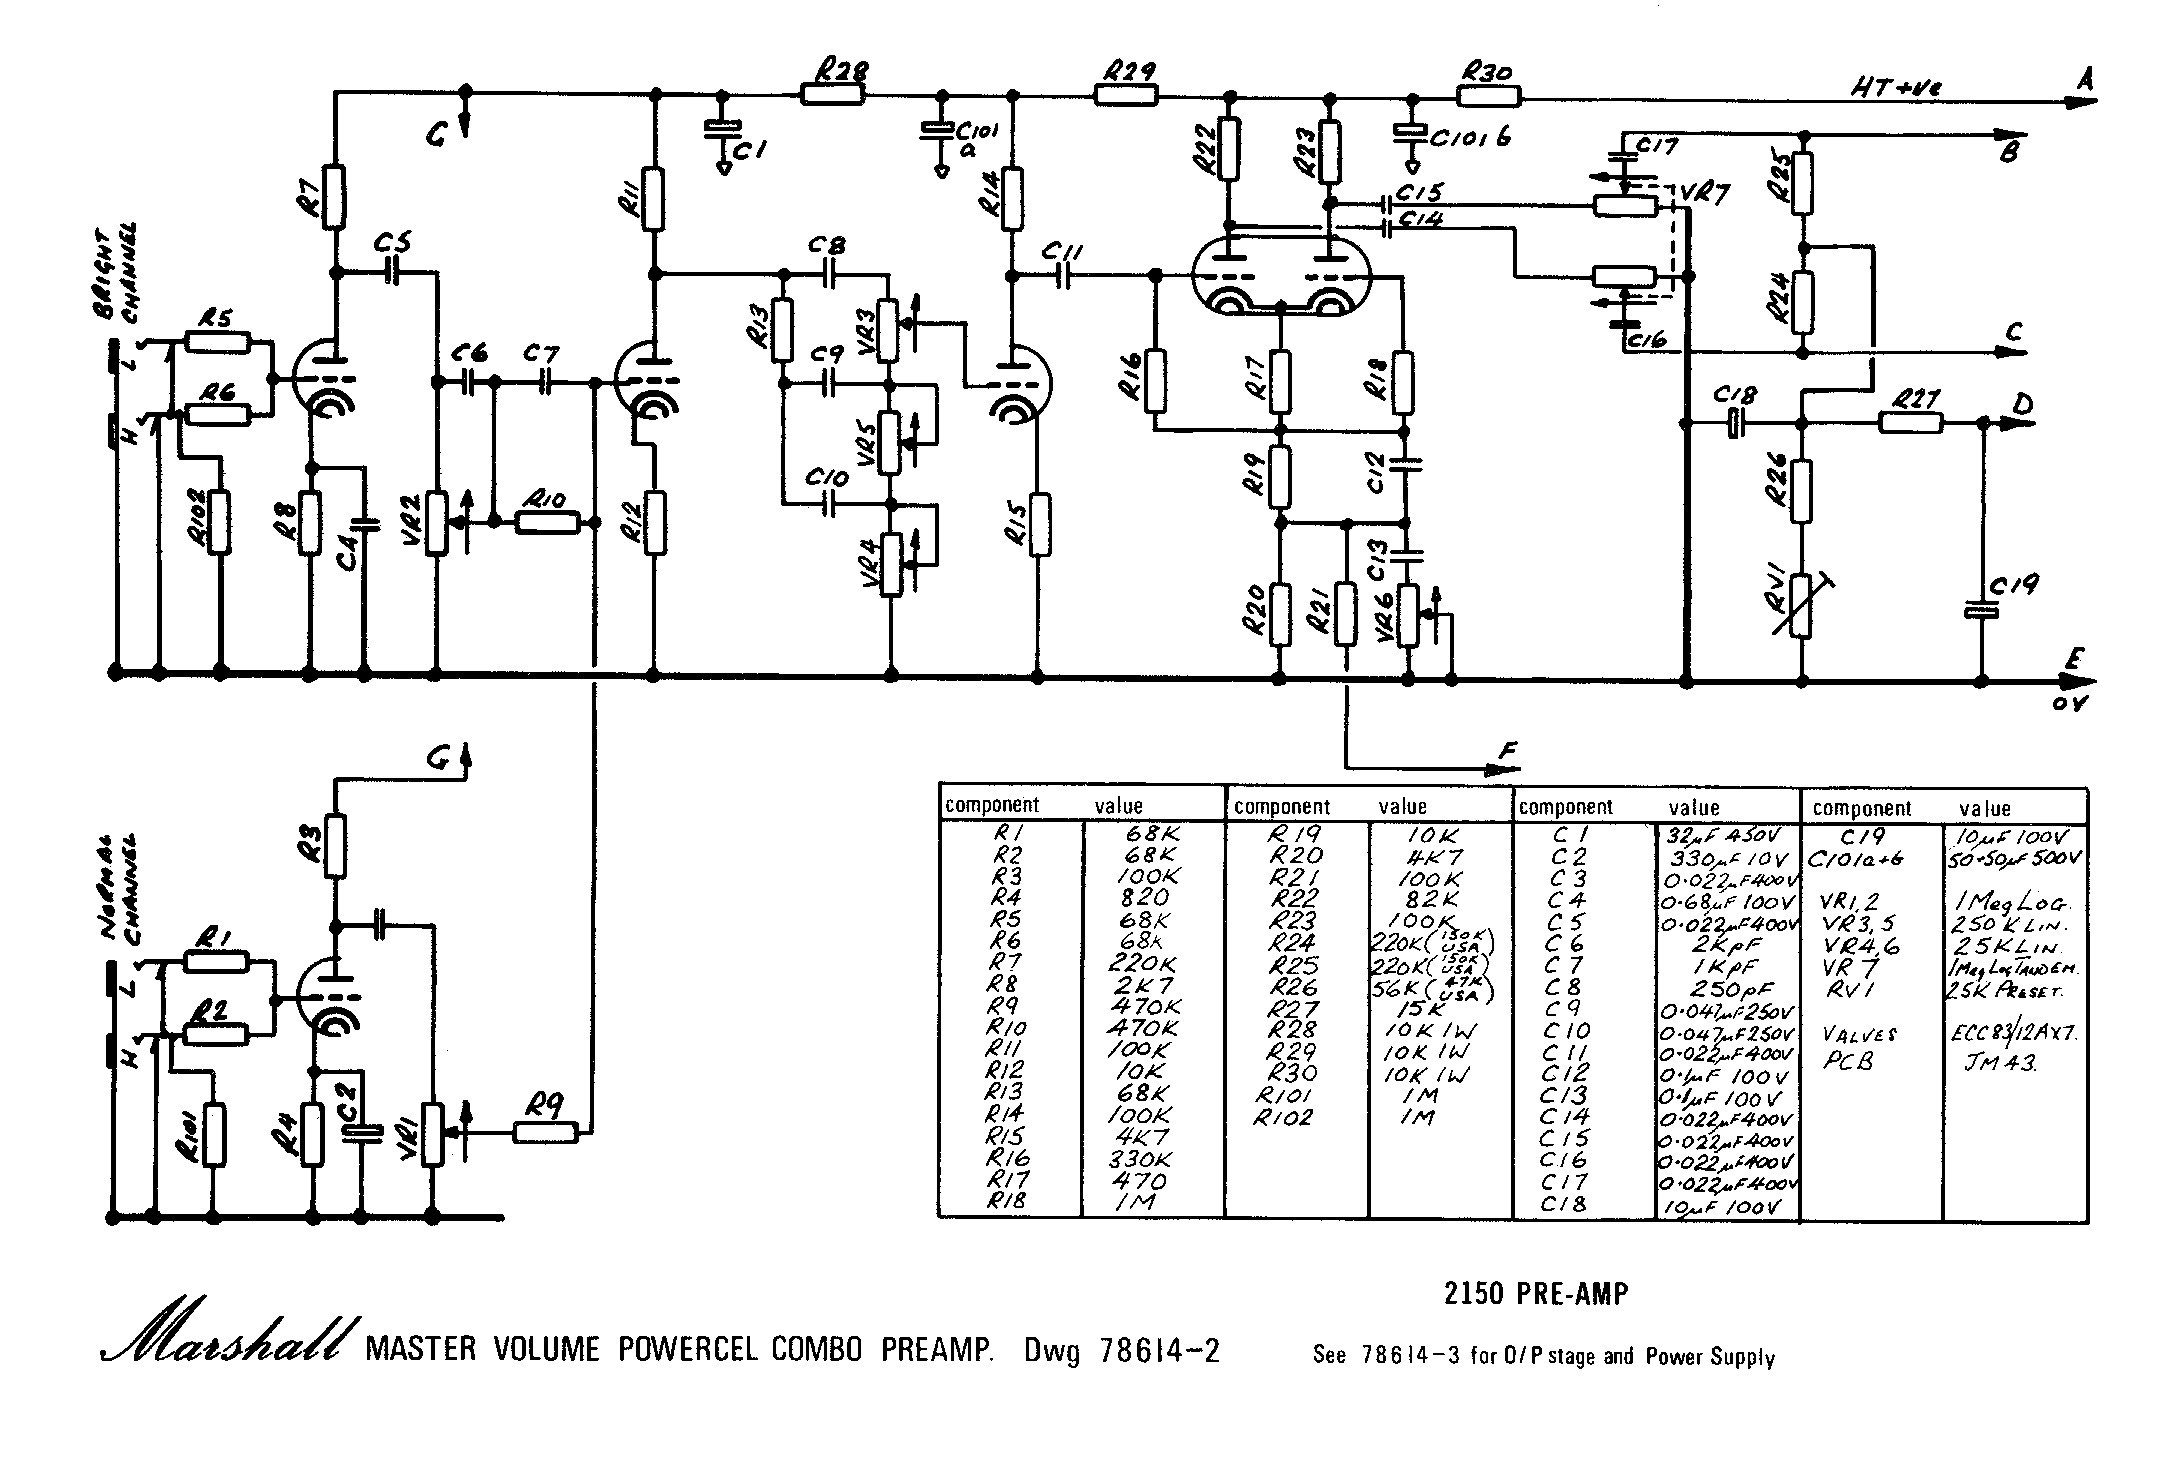 2 button Footswitch    Schematic         Wiring       Diagram    Image